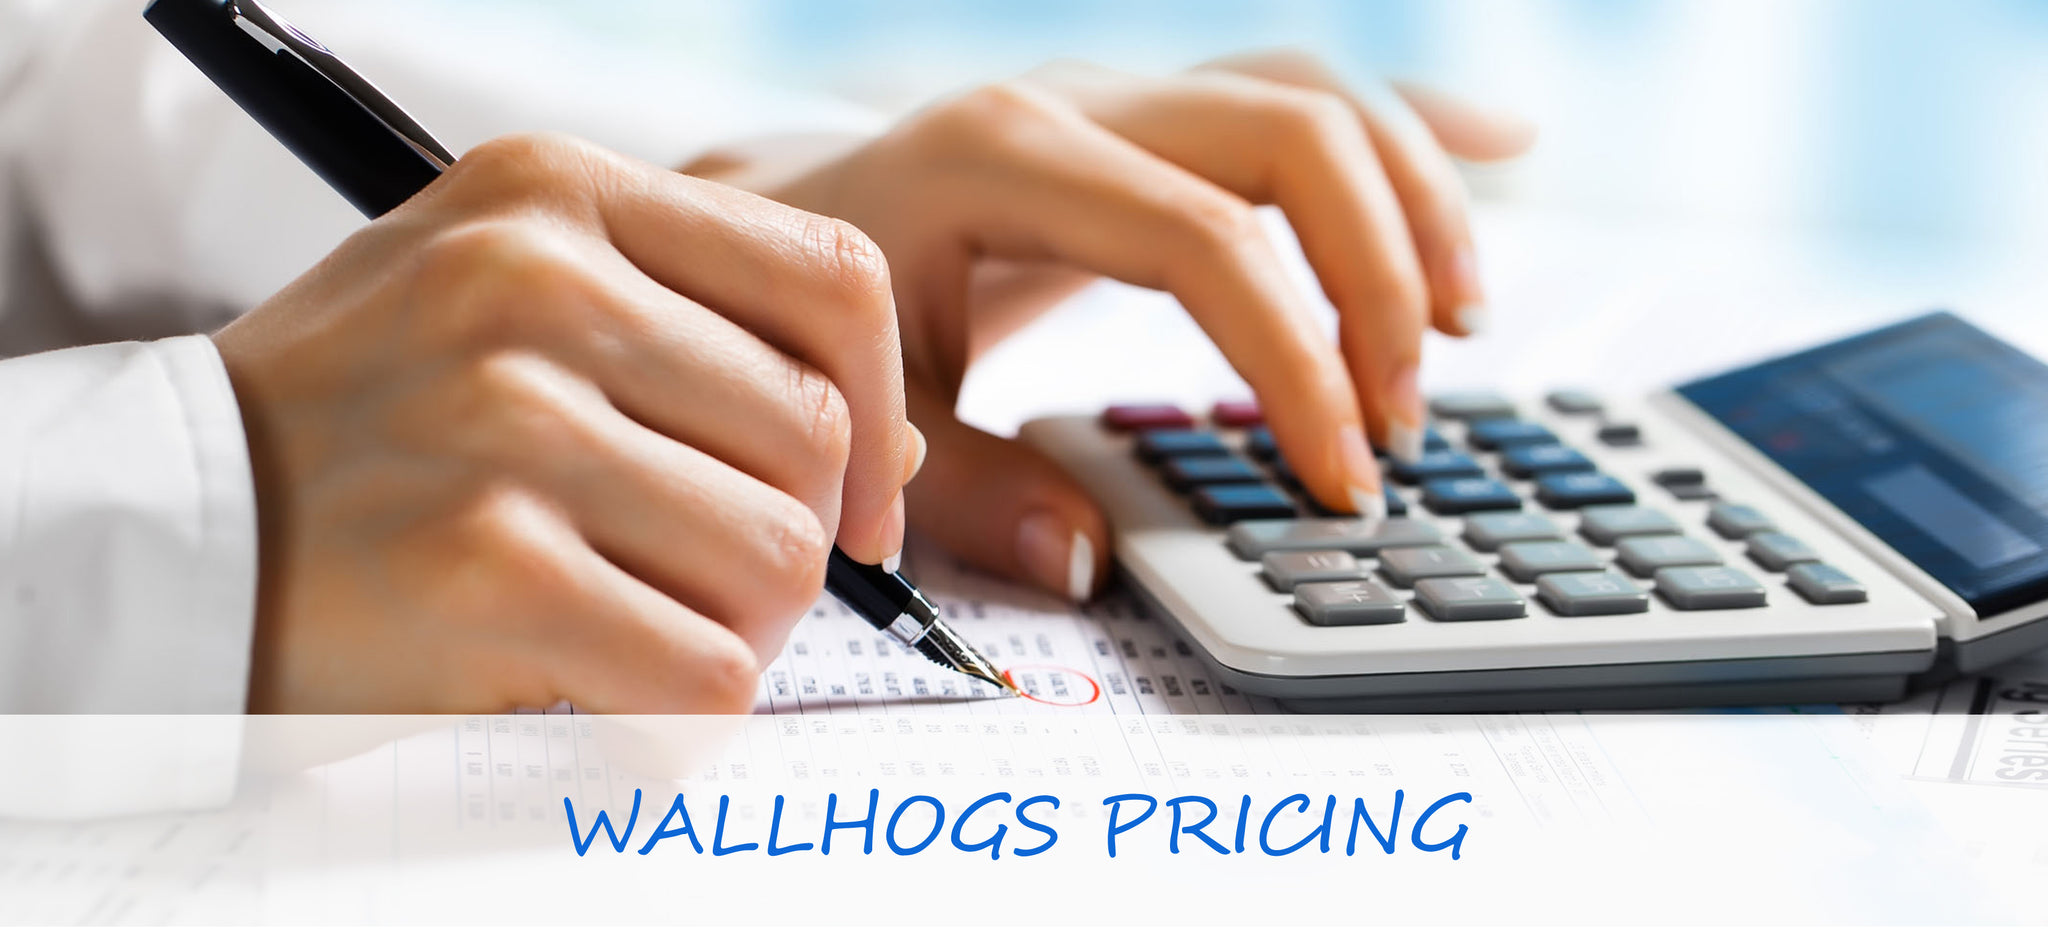 Wallhogs Pricing & Sizes